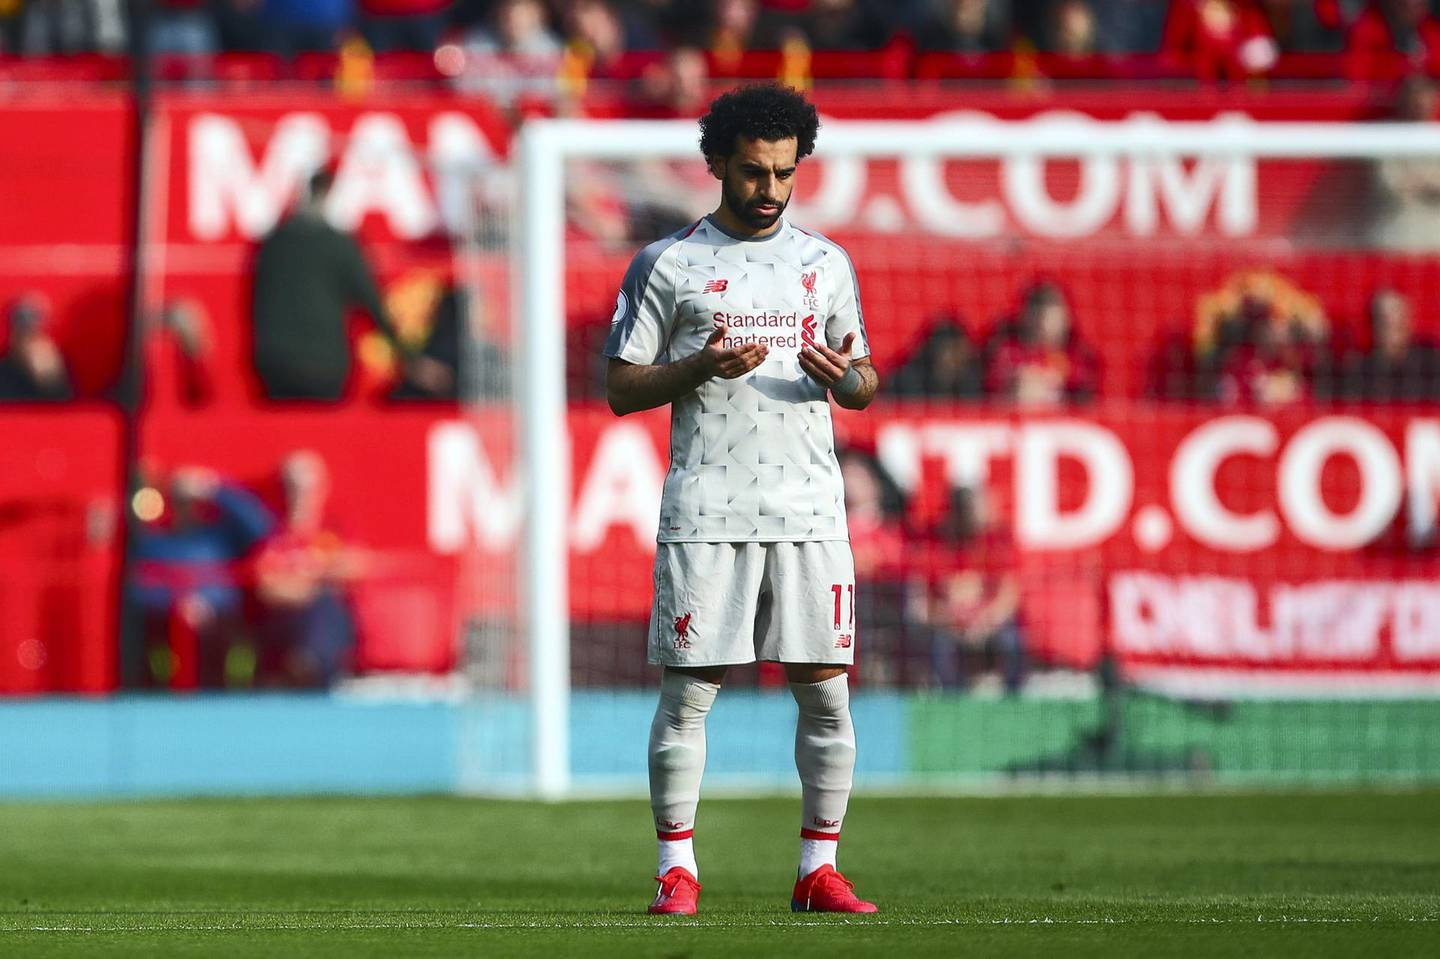 MANCHESTER, ENGLAND - FEBRUARY 24: Mohamed Salah of Liverpool prays during the Premier League match between Manchester United and Liverpool FC at Old Trafford on February 24, 2019 in Manchester, United Kingdom. (Photo by Robbie Jay Barratt - AMA/Getty Images)